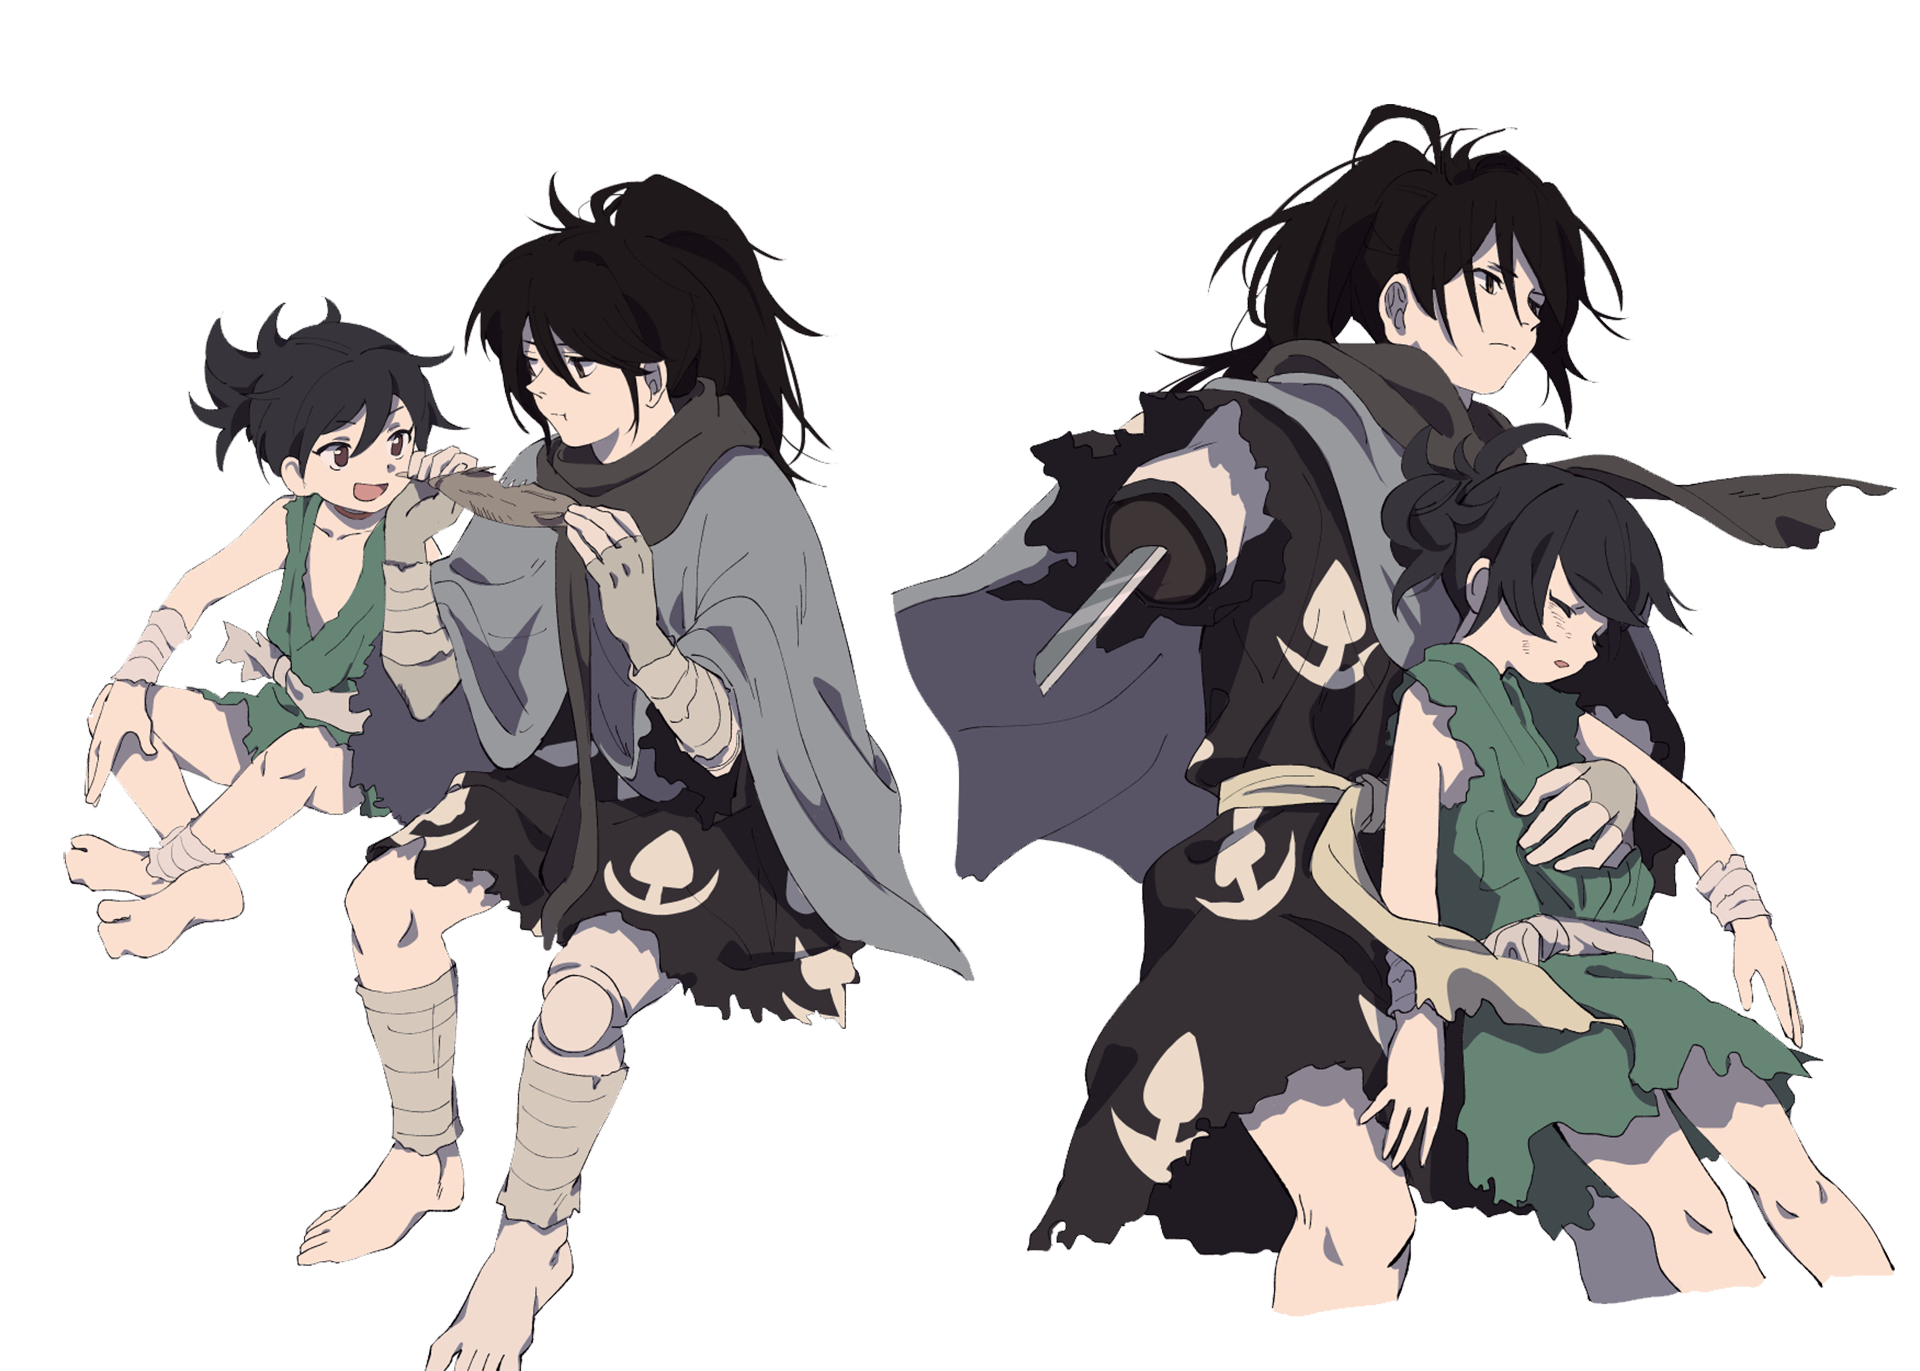 Dororo (Anime Series) HD Images Anime, Hd images, Image